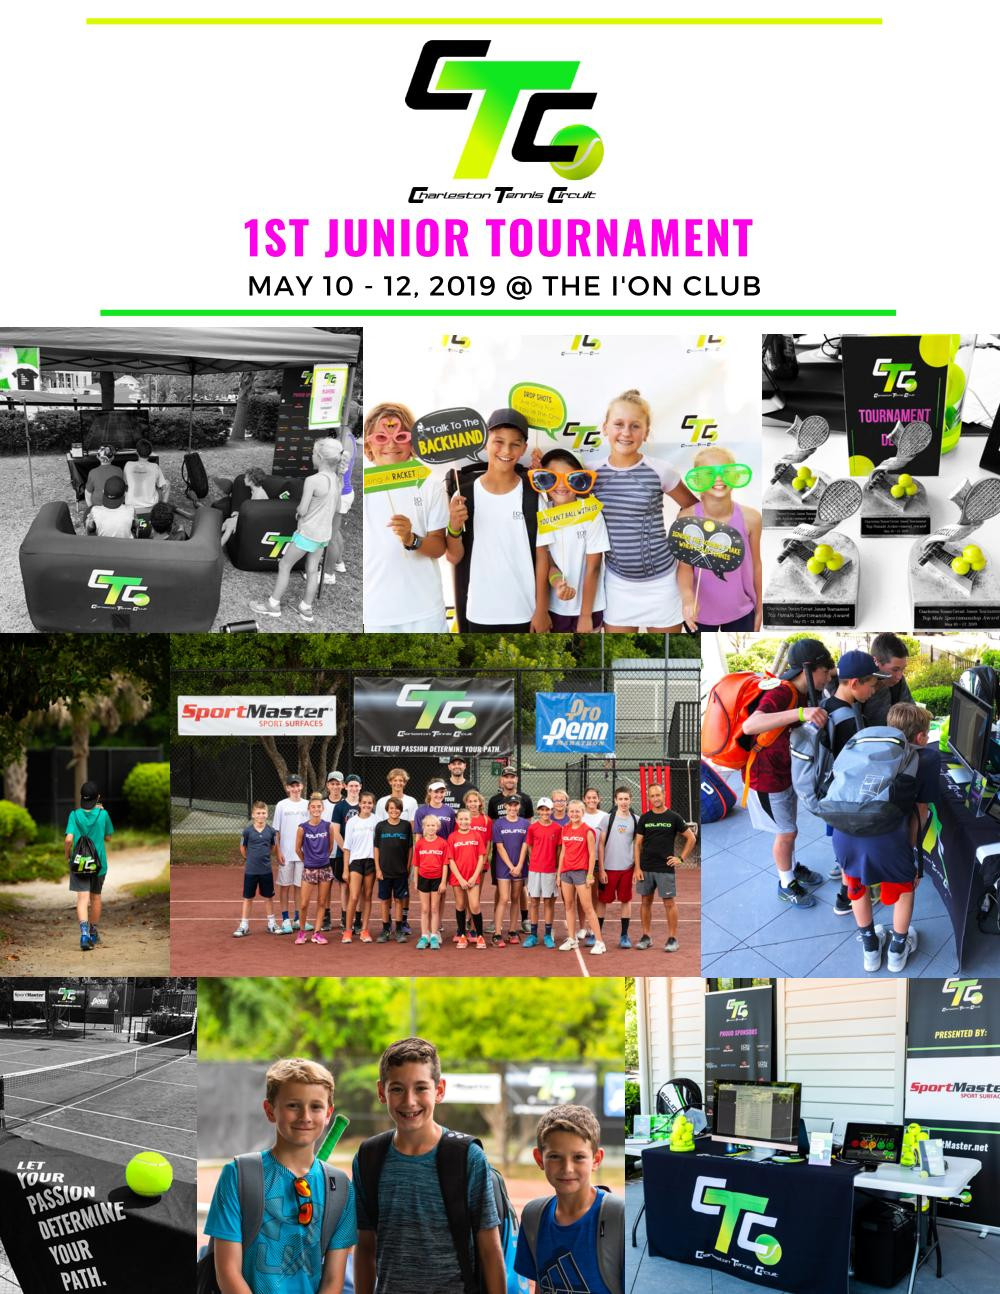 Images from the 1st CTC Junior tournament at the I'ON Tennis Club